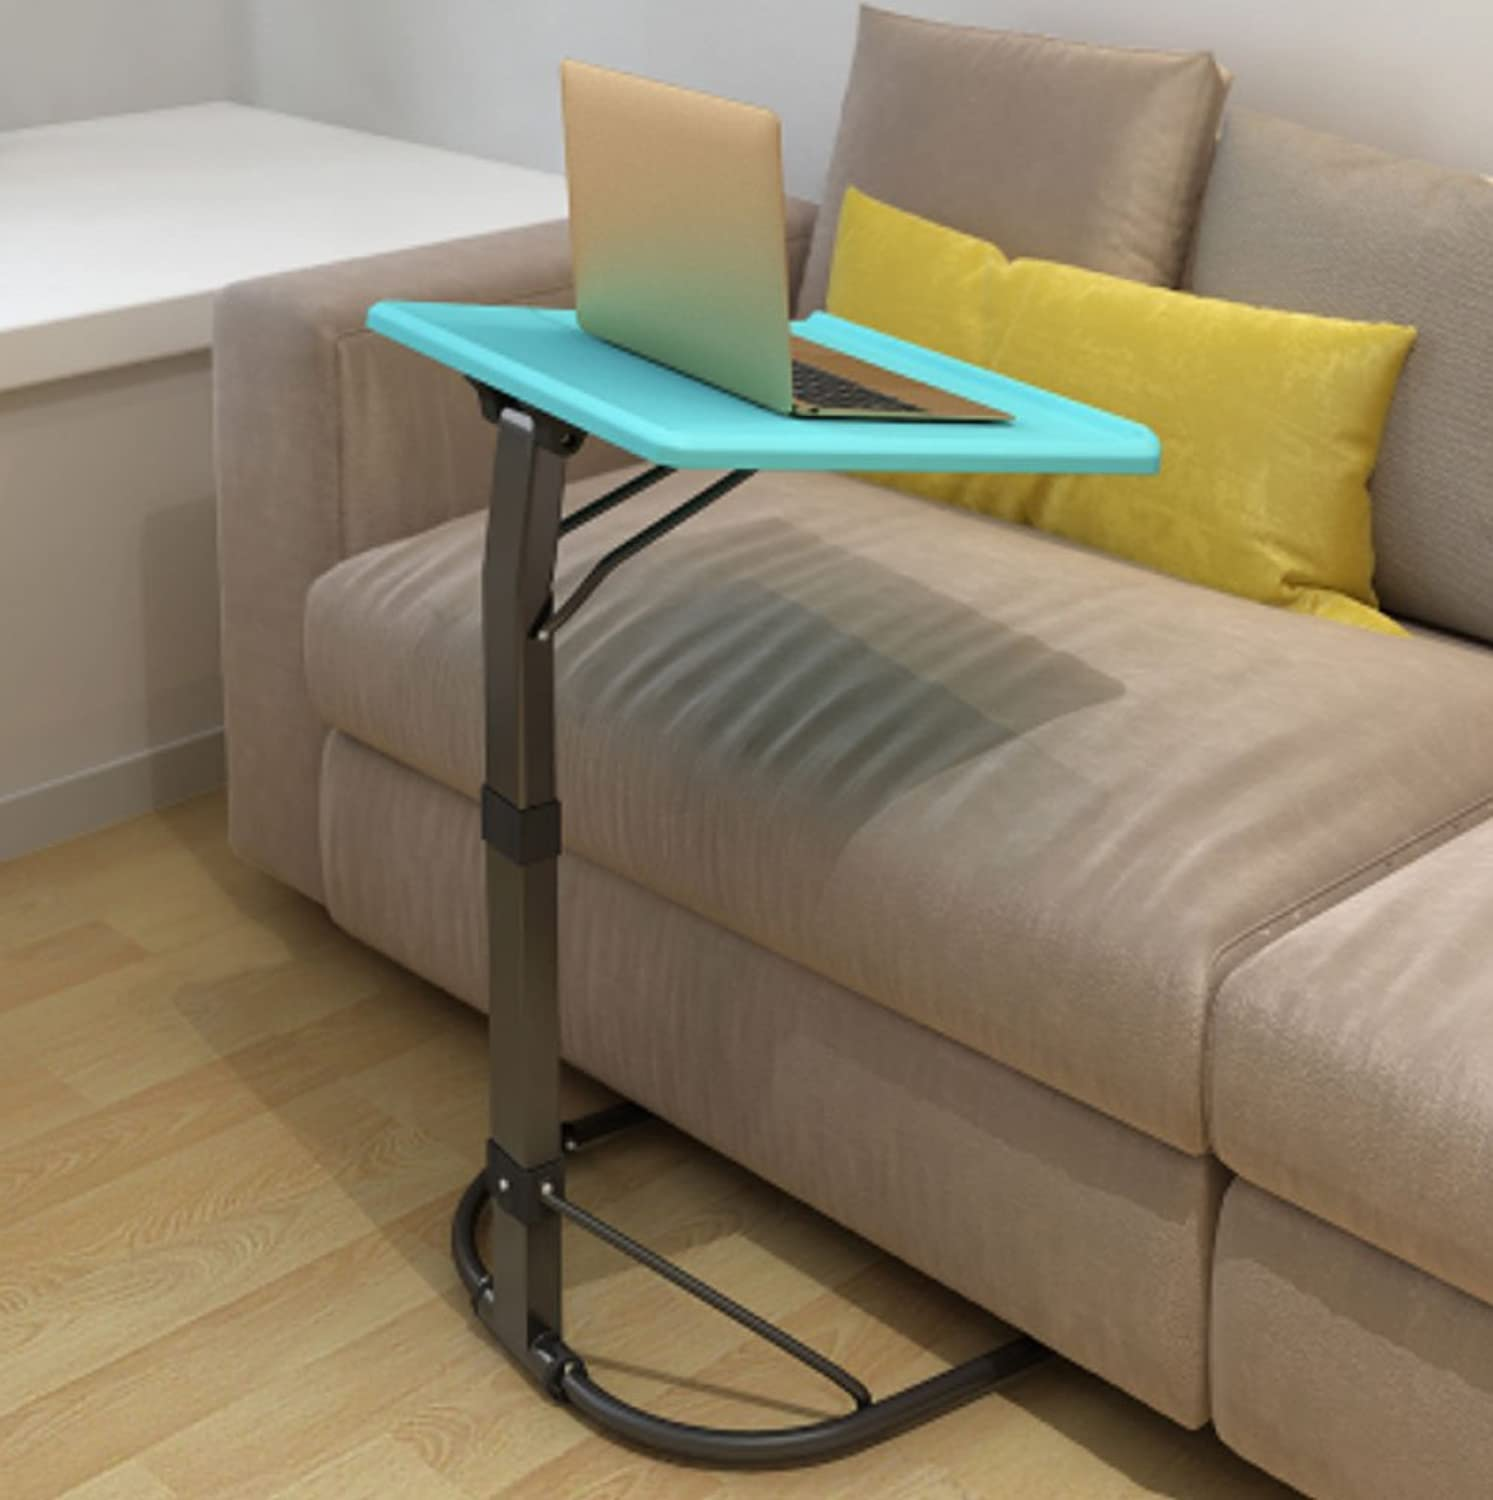 Adjustable Laptop Table Bed Lazy Table fold Lift it can Move Desk Simple Sofa Table Bedside Table Foldable (color    2)